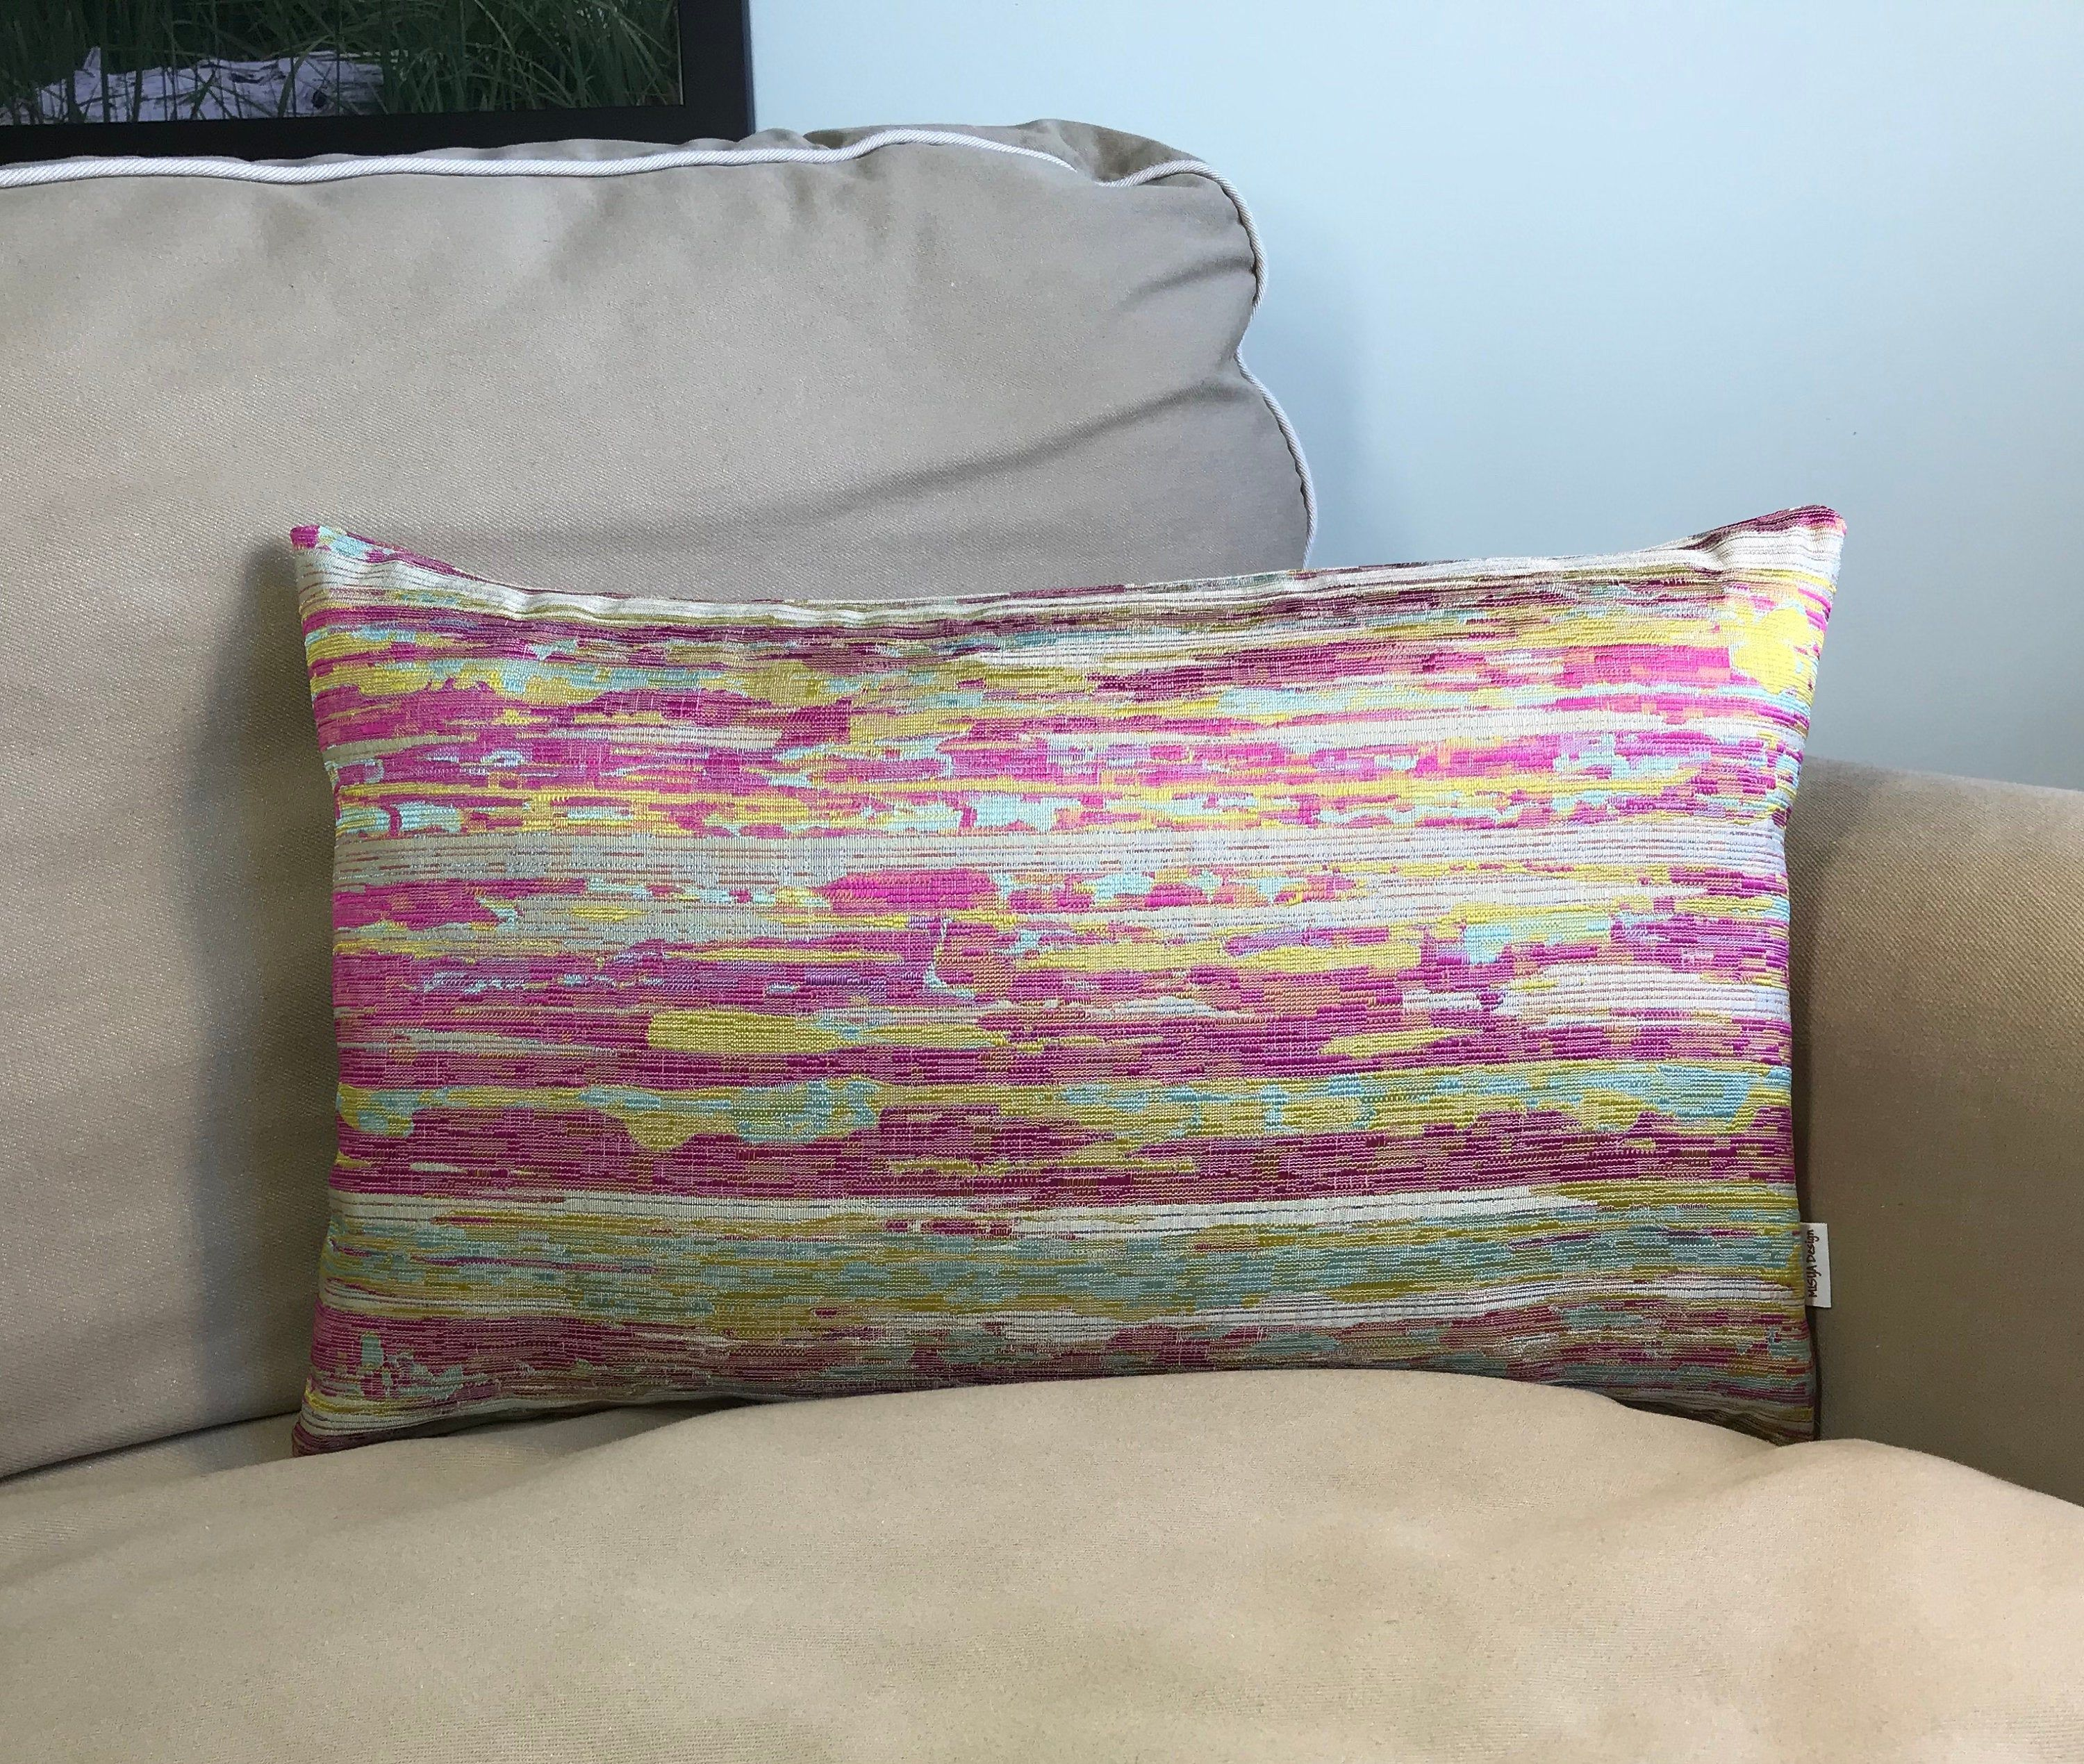 Pink And Golden Yellow Jacquard Two Sided Decorative Pillow Handmade Pillow Case Rectangle Pillow Cover Colourful Cushion Colourful Cushions Decorative Pillow Cases Handmade Pillows